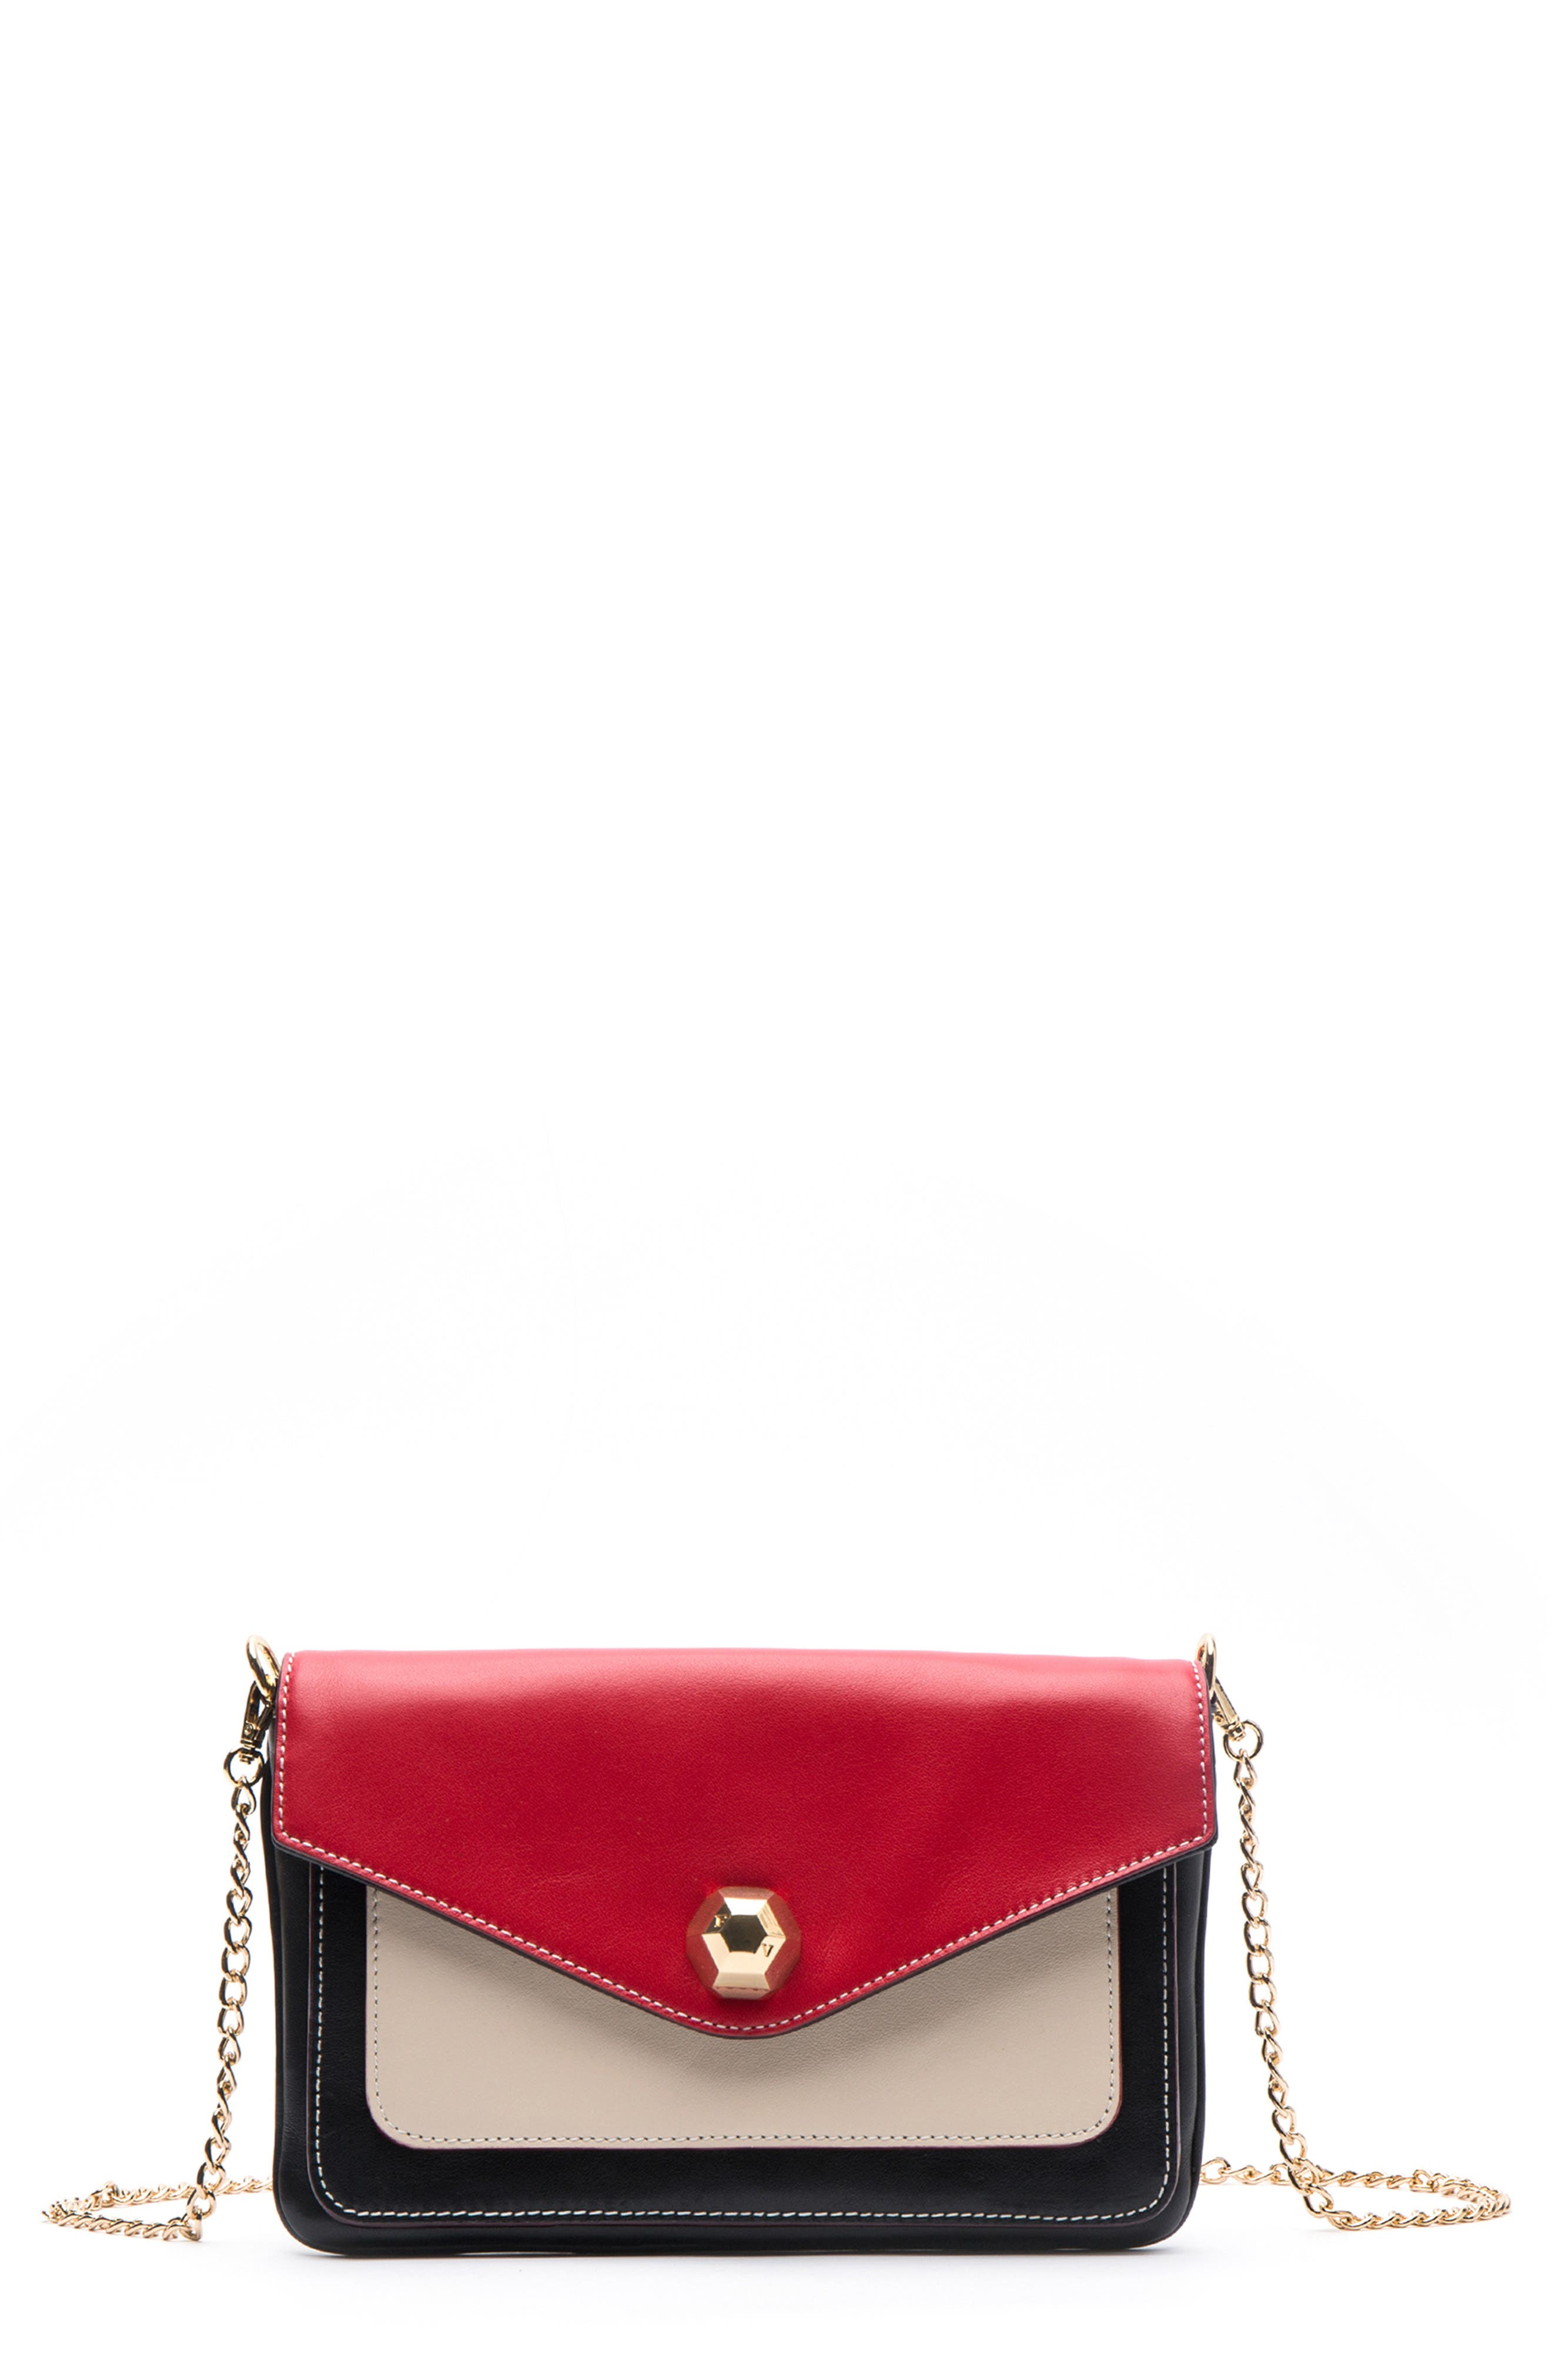 Tess Colorblock Leather Clutch,                         Main,                         color, BLACK/ OYSTER/ RED